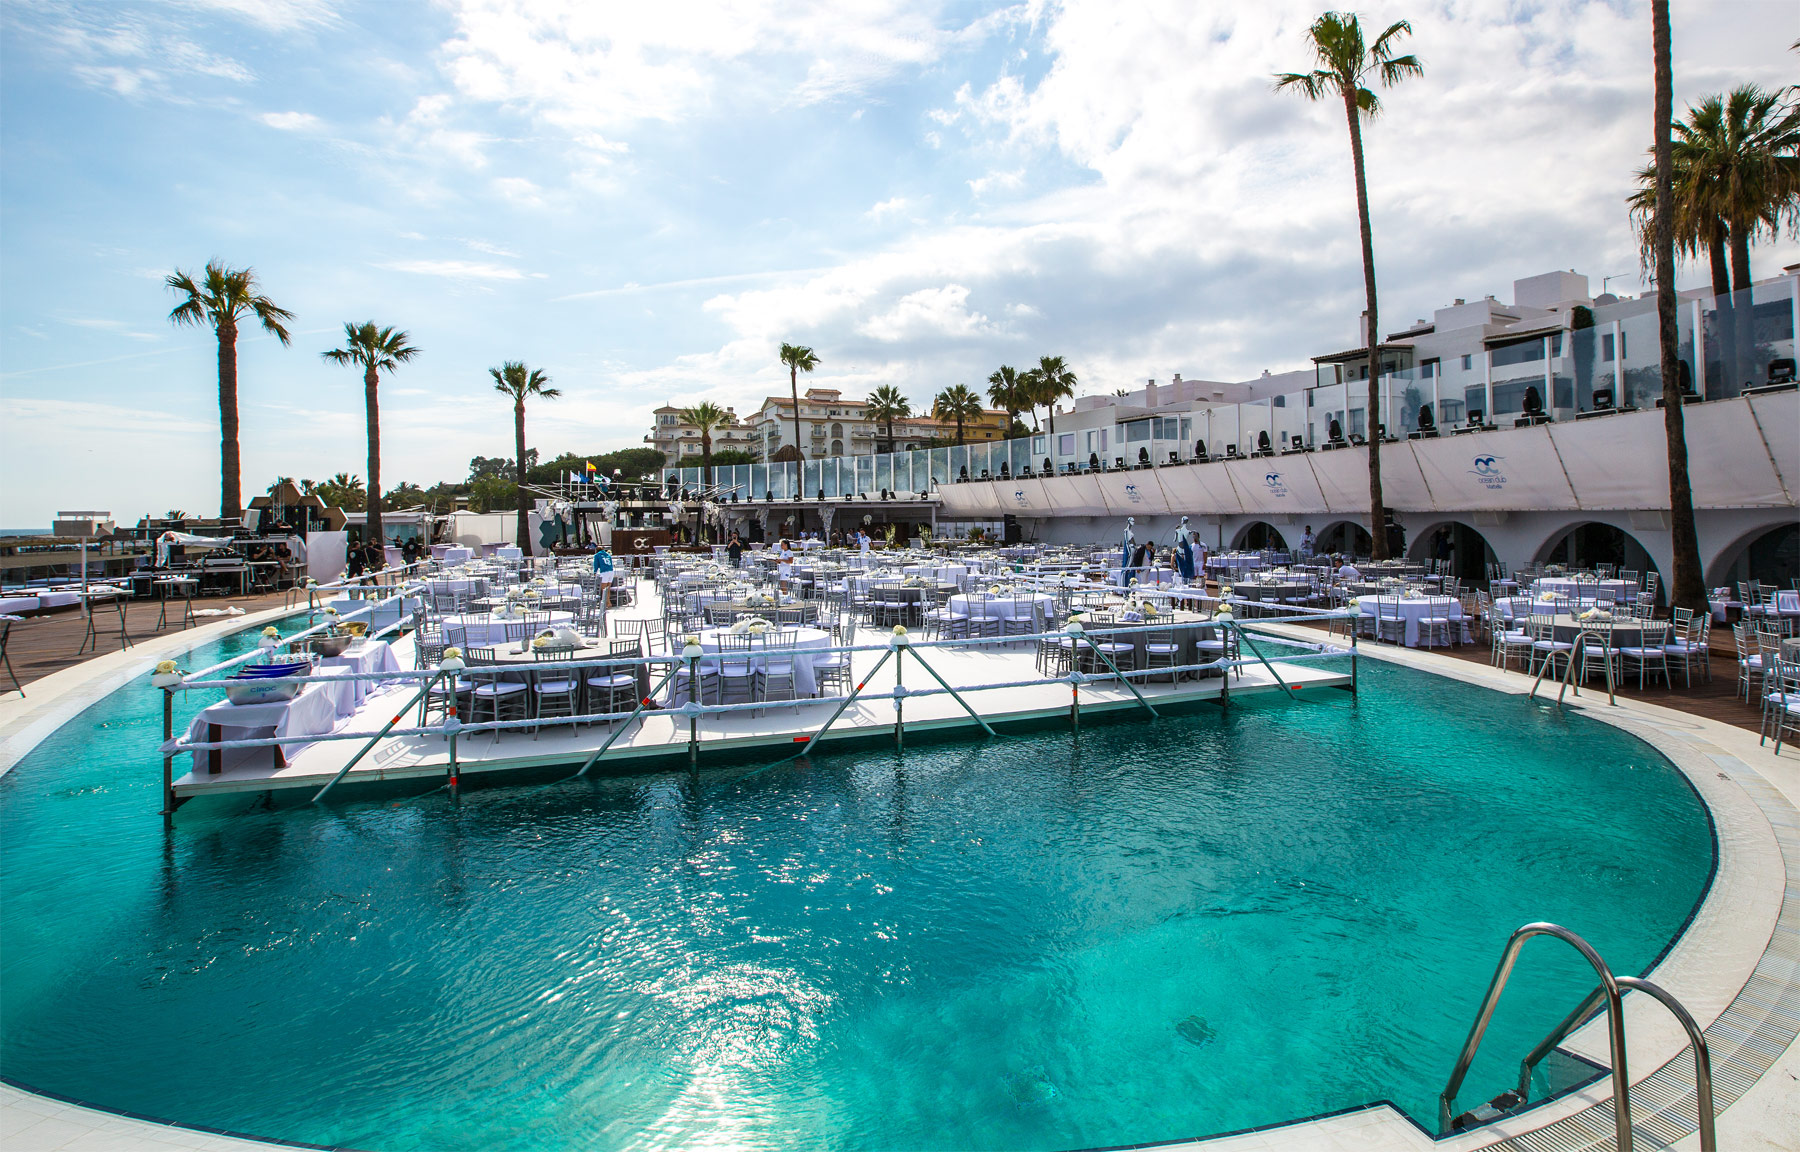 Immerse Yourself In A World Of Whites And Blues At Ocean Club Marbella